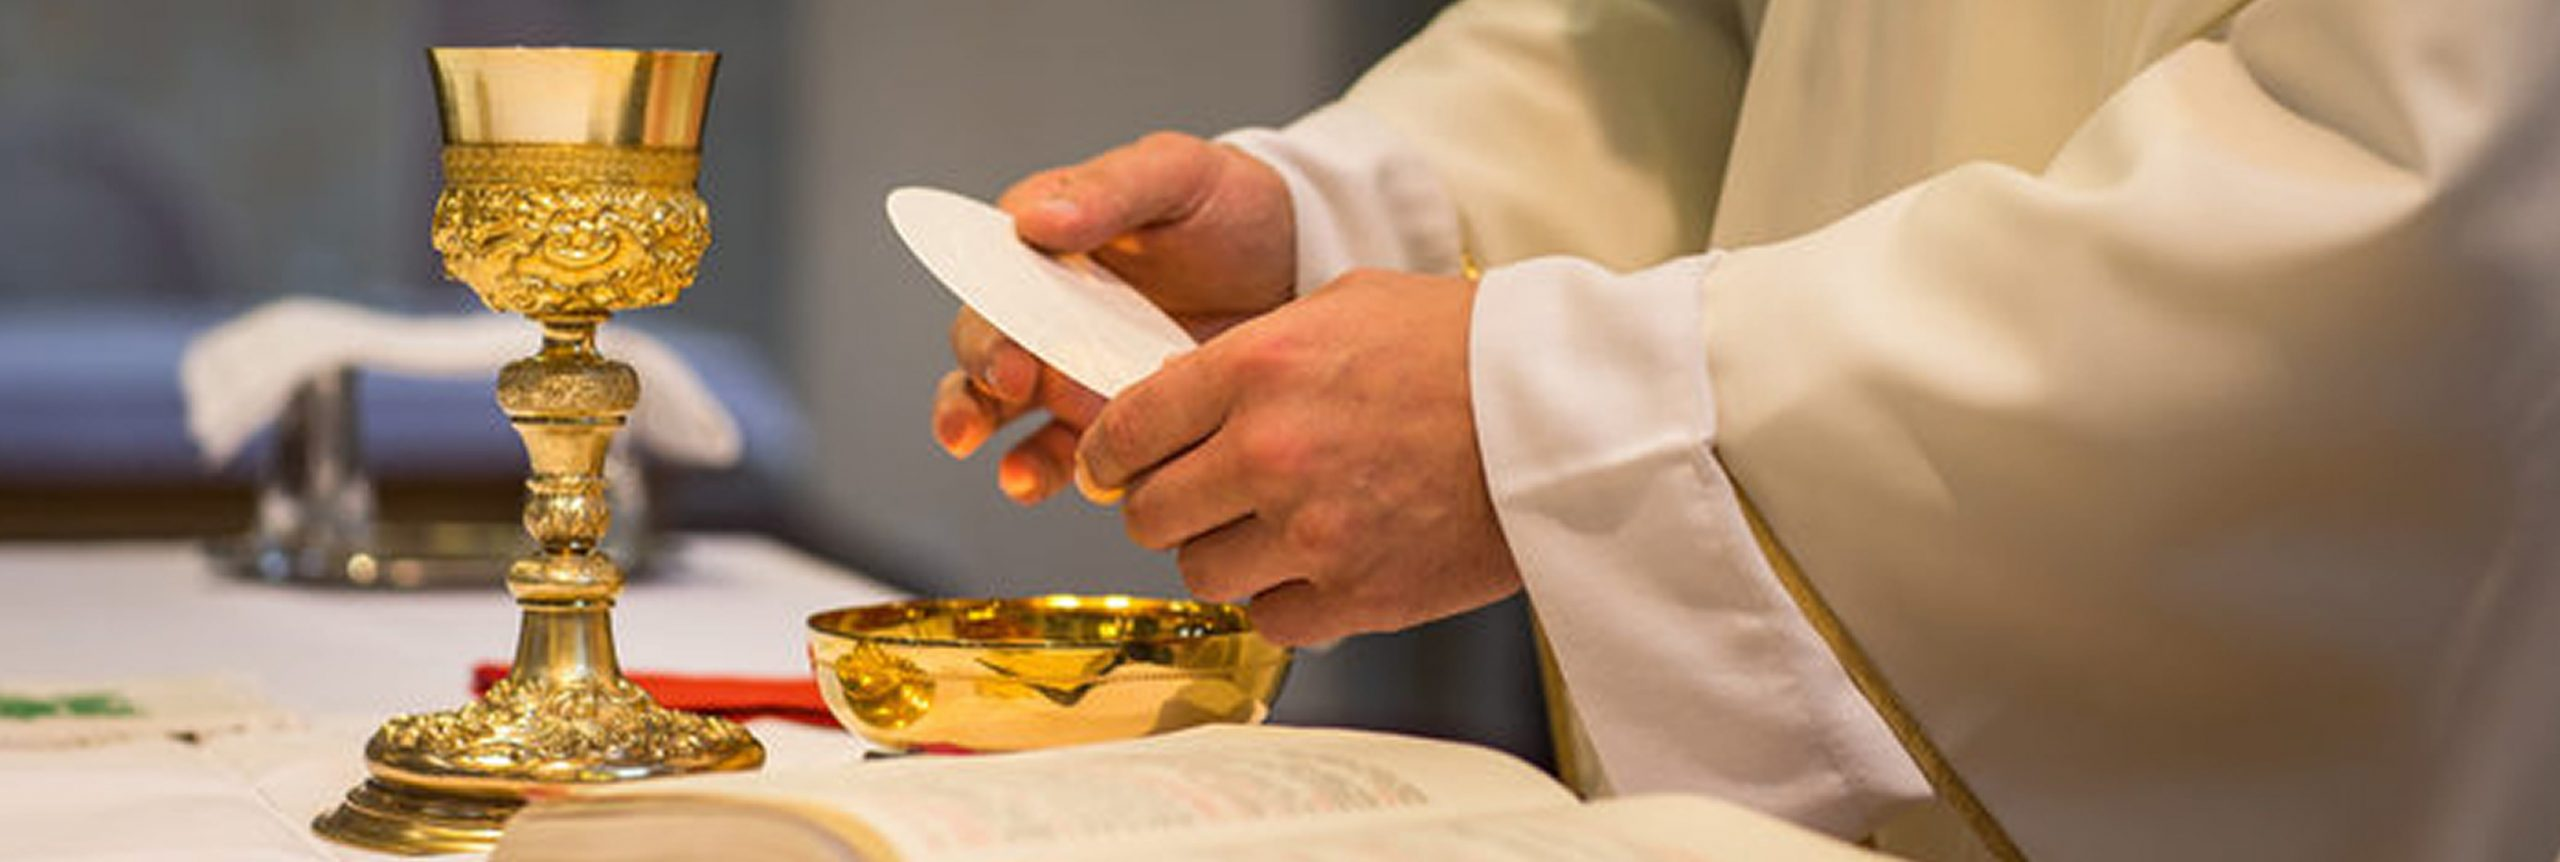 VOCATIONS TO THE PRIESTHOOD